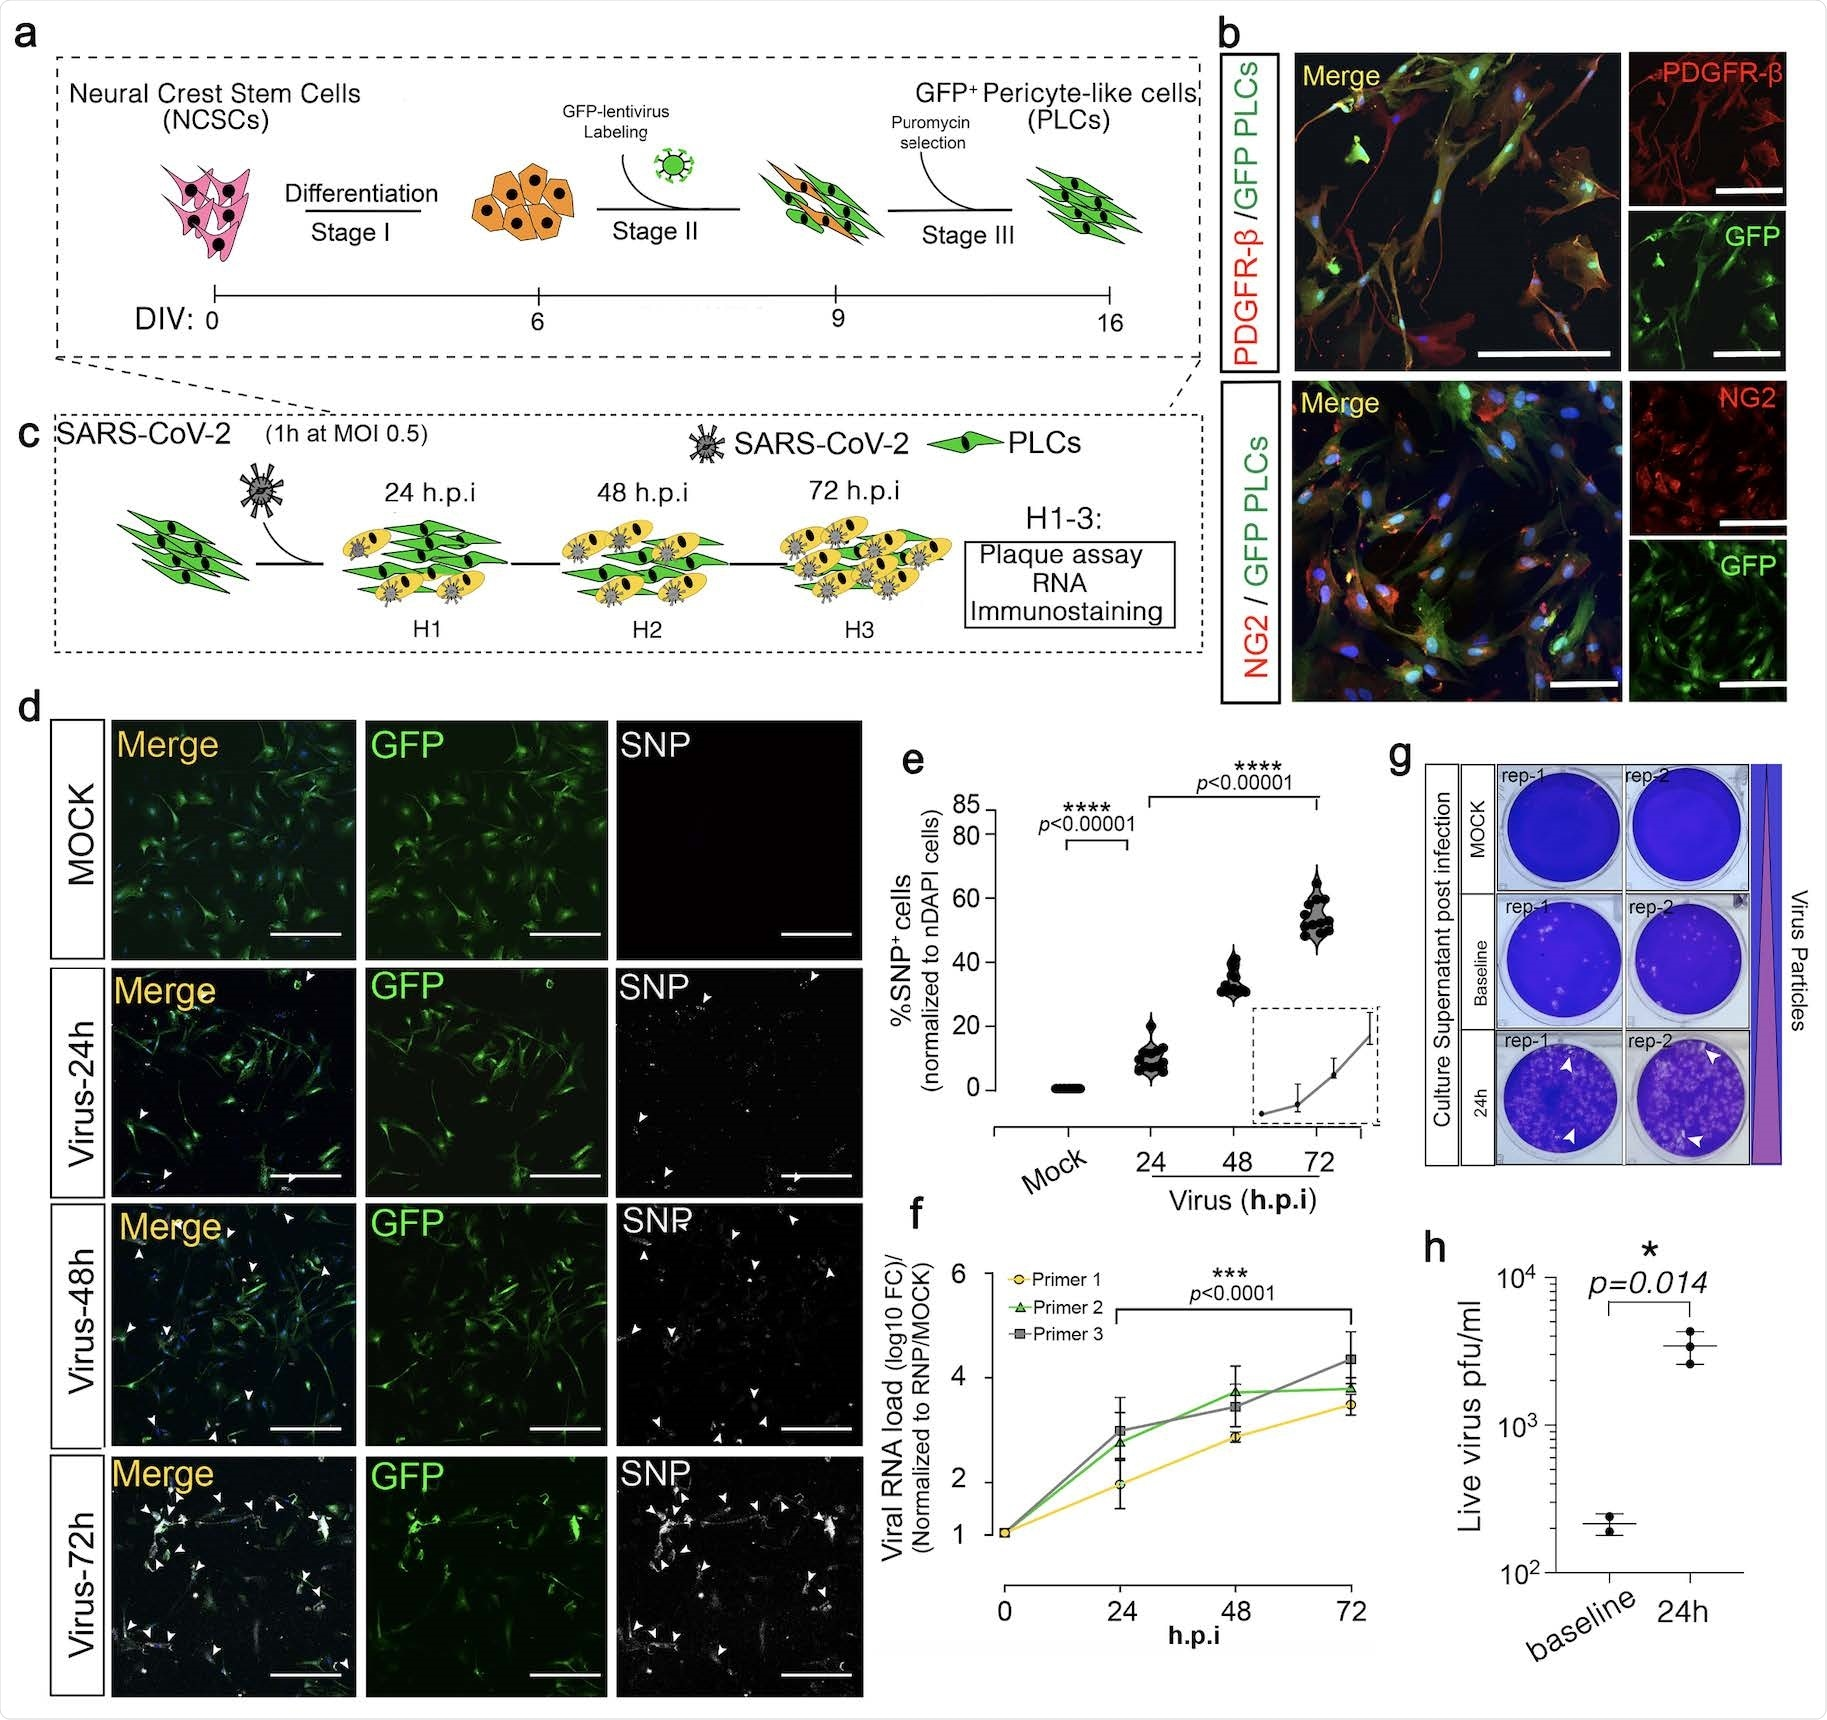 SARS-CoV-2 productively infects pericyte-like-cells.